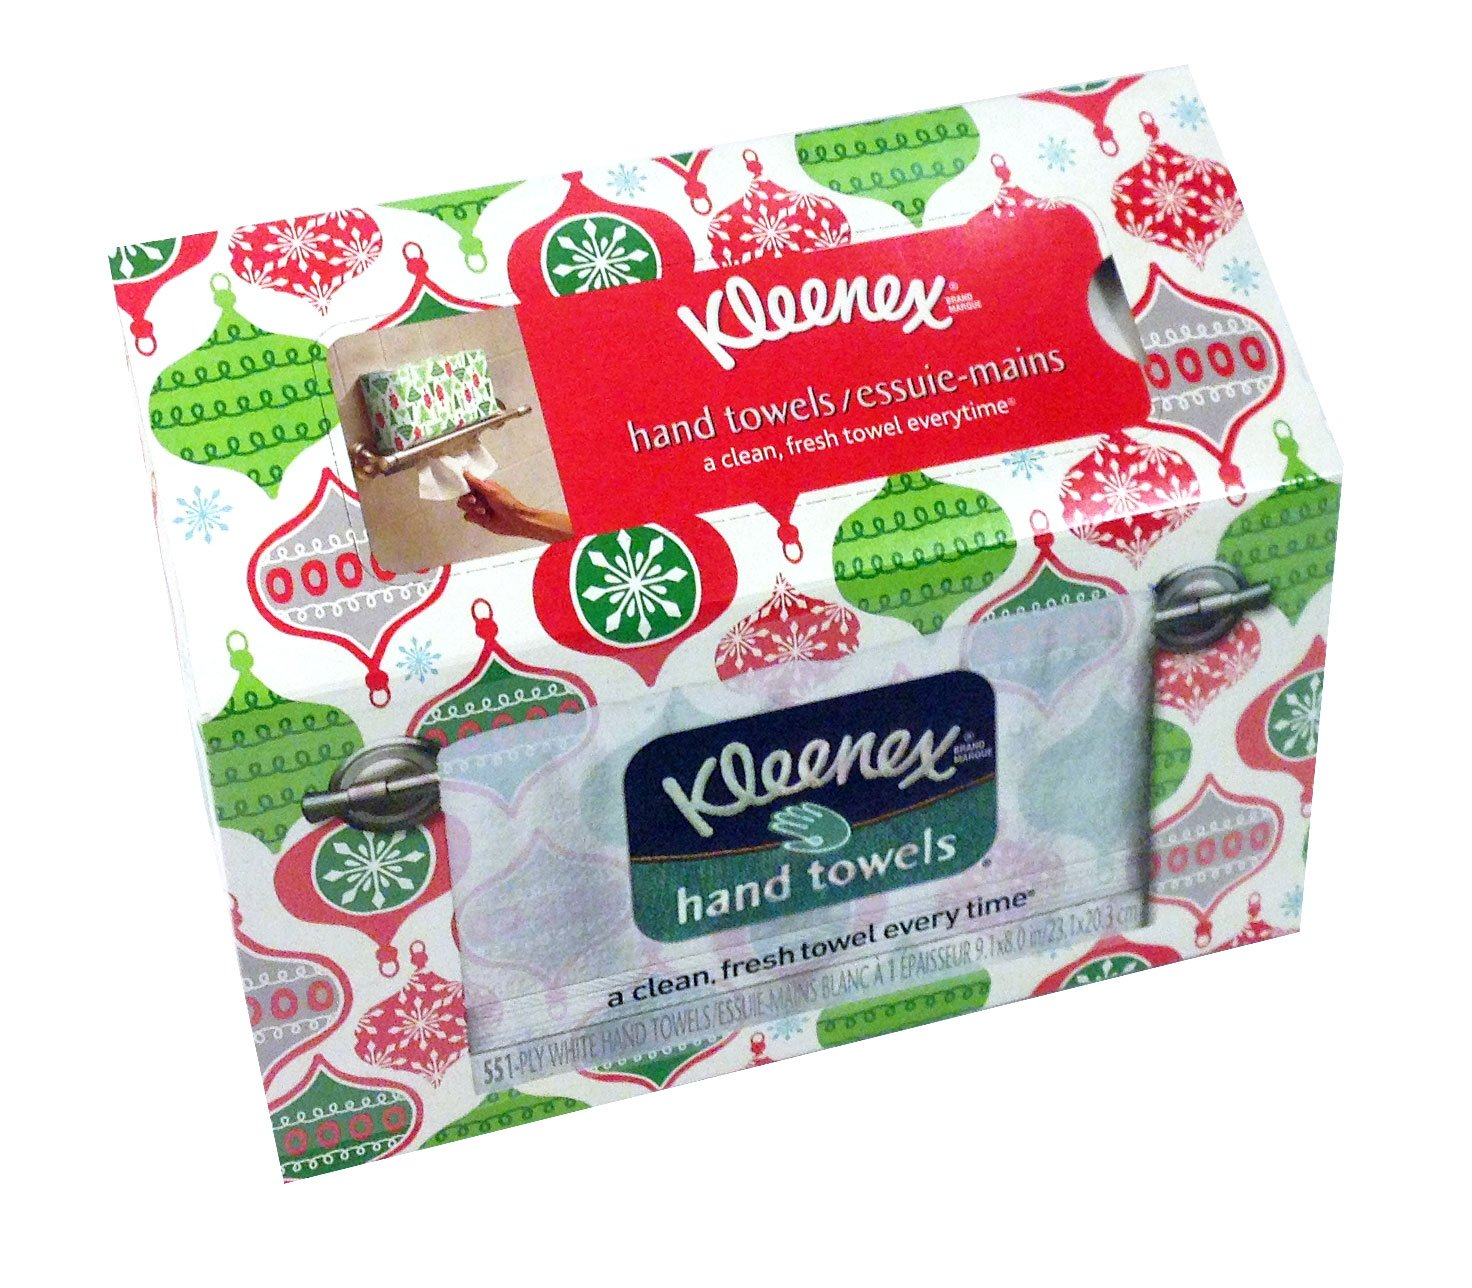 Kleenex White Disposable Hand Towels, Holiday Themed Box, 1 Box (Designs May Vary)